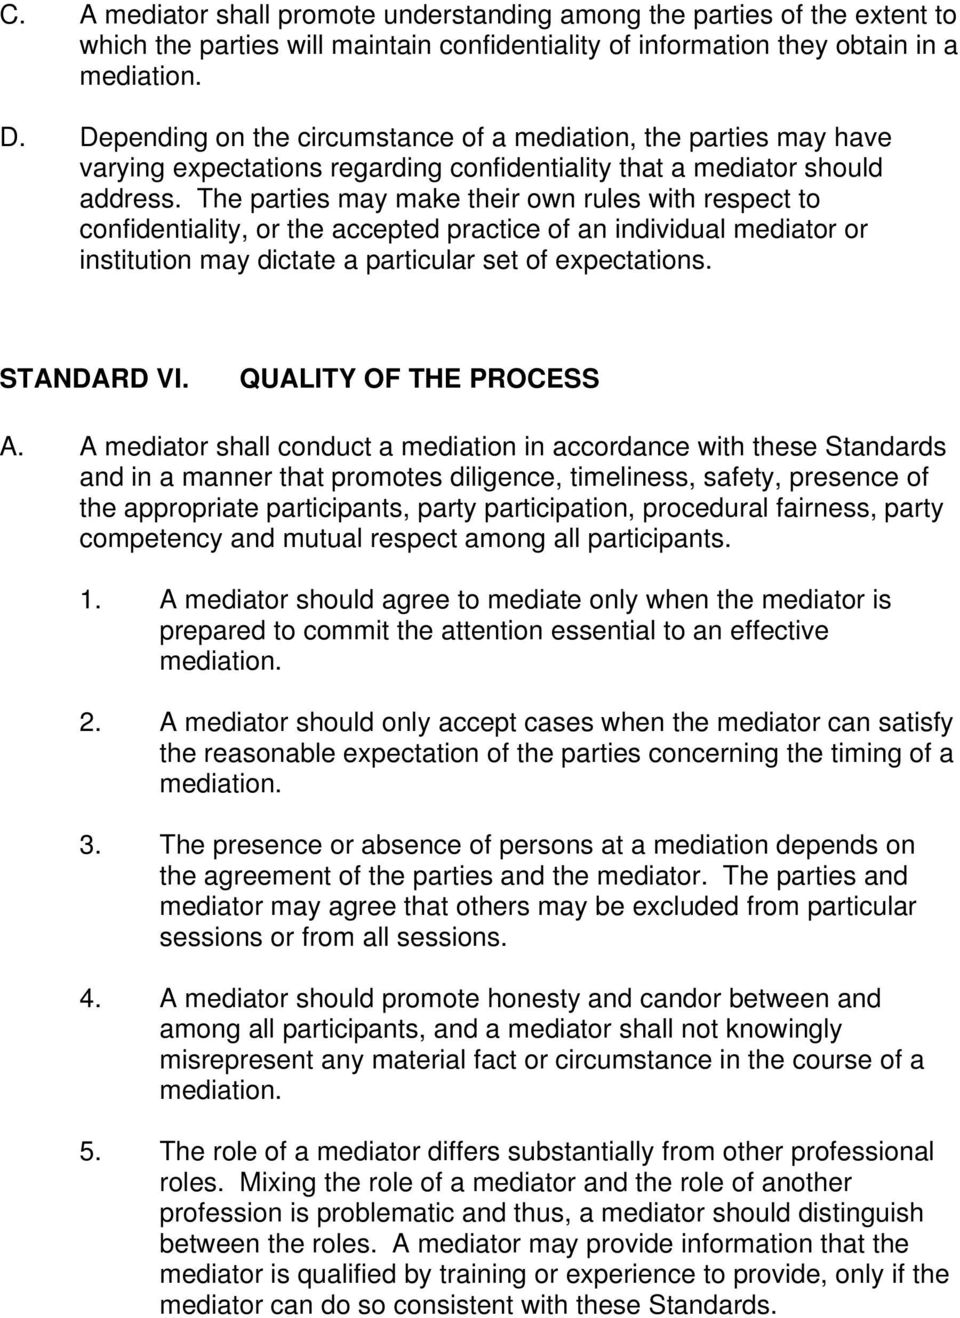 The parties may make their own rules with respect to confidentiality, or the accepted practice of an individual mediator or institution may dictate a particular set of expectations. STANDARD VI.